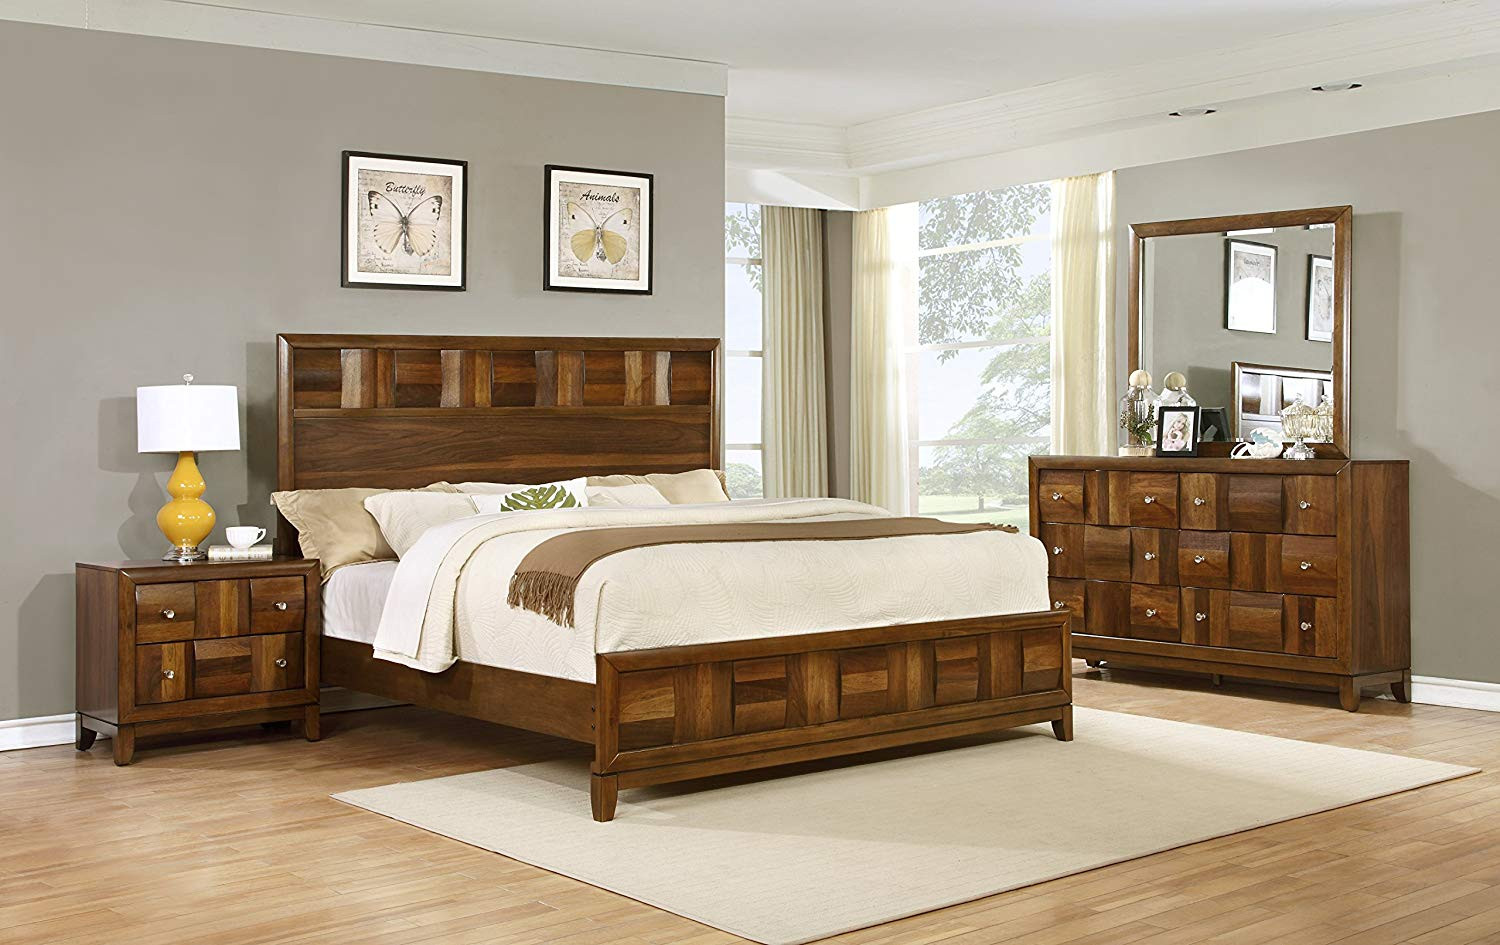 Best ideas about Solid Wood Bedroom Sets . Save or Pin Roundhill Furniture Calais Solid Wood Construction Bedroom Now.